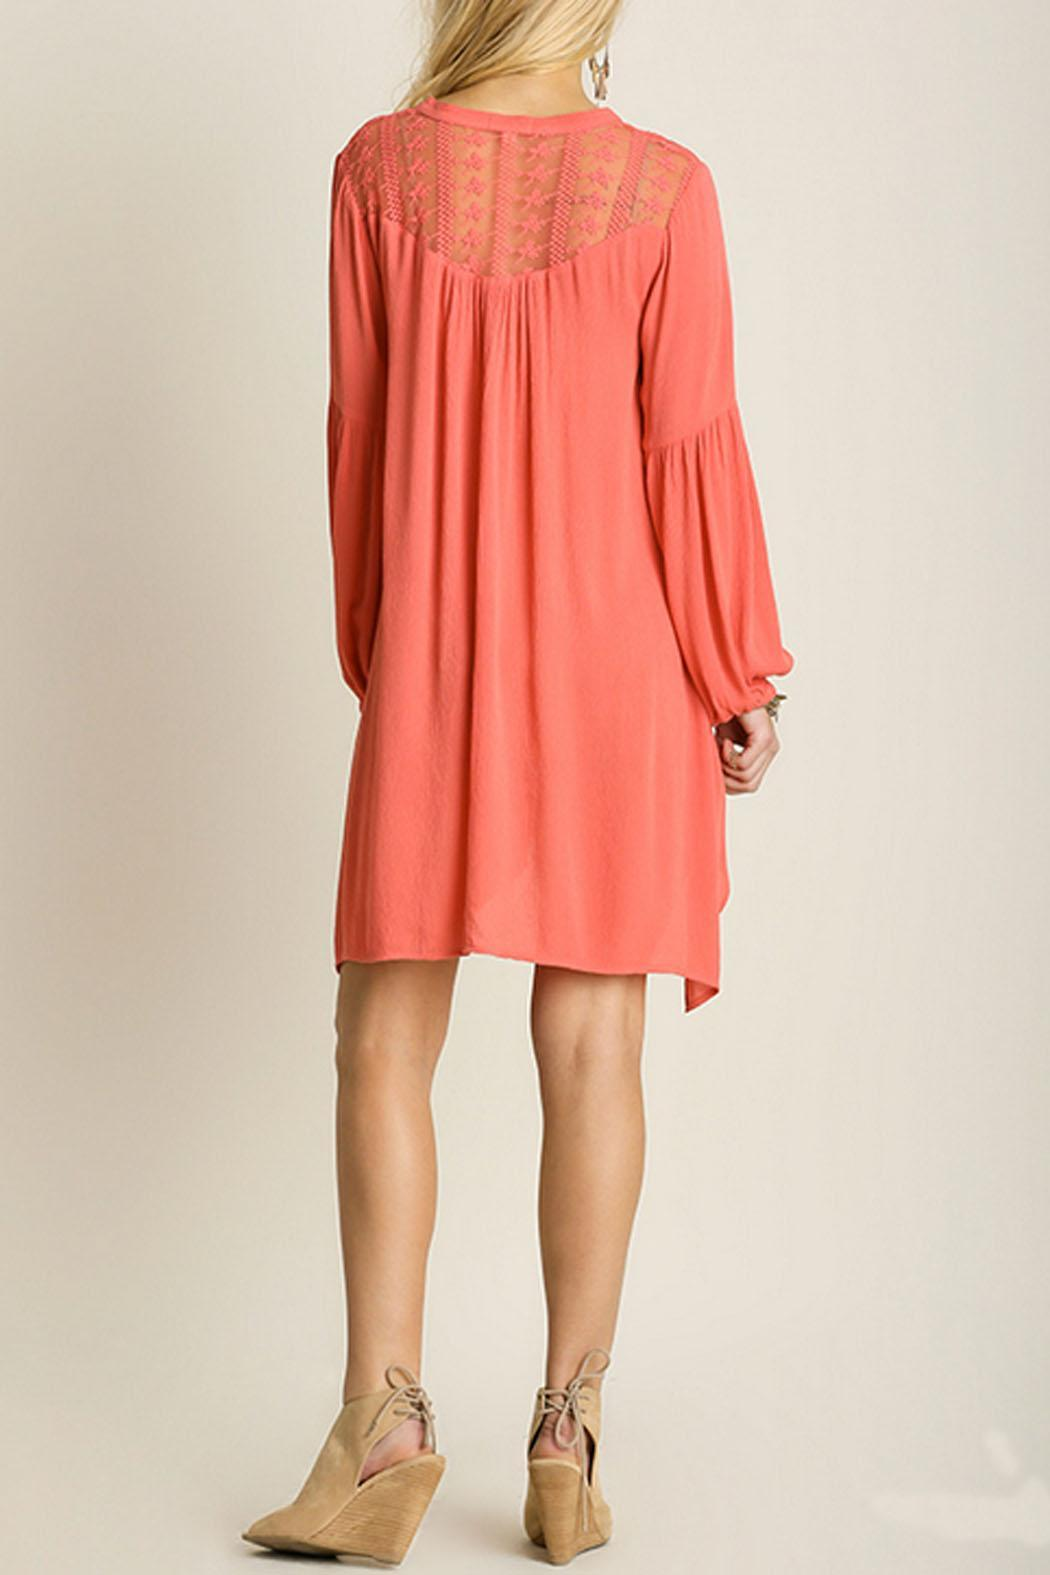 Umgee USA Cece Dress From Vancouver By Carte Blanche